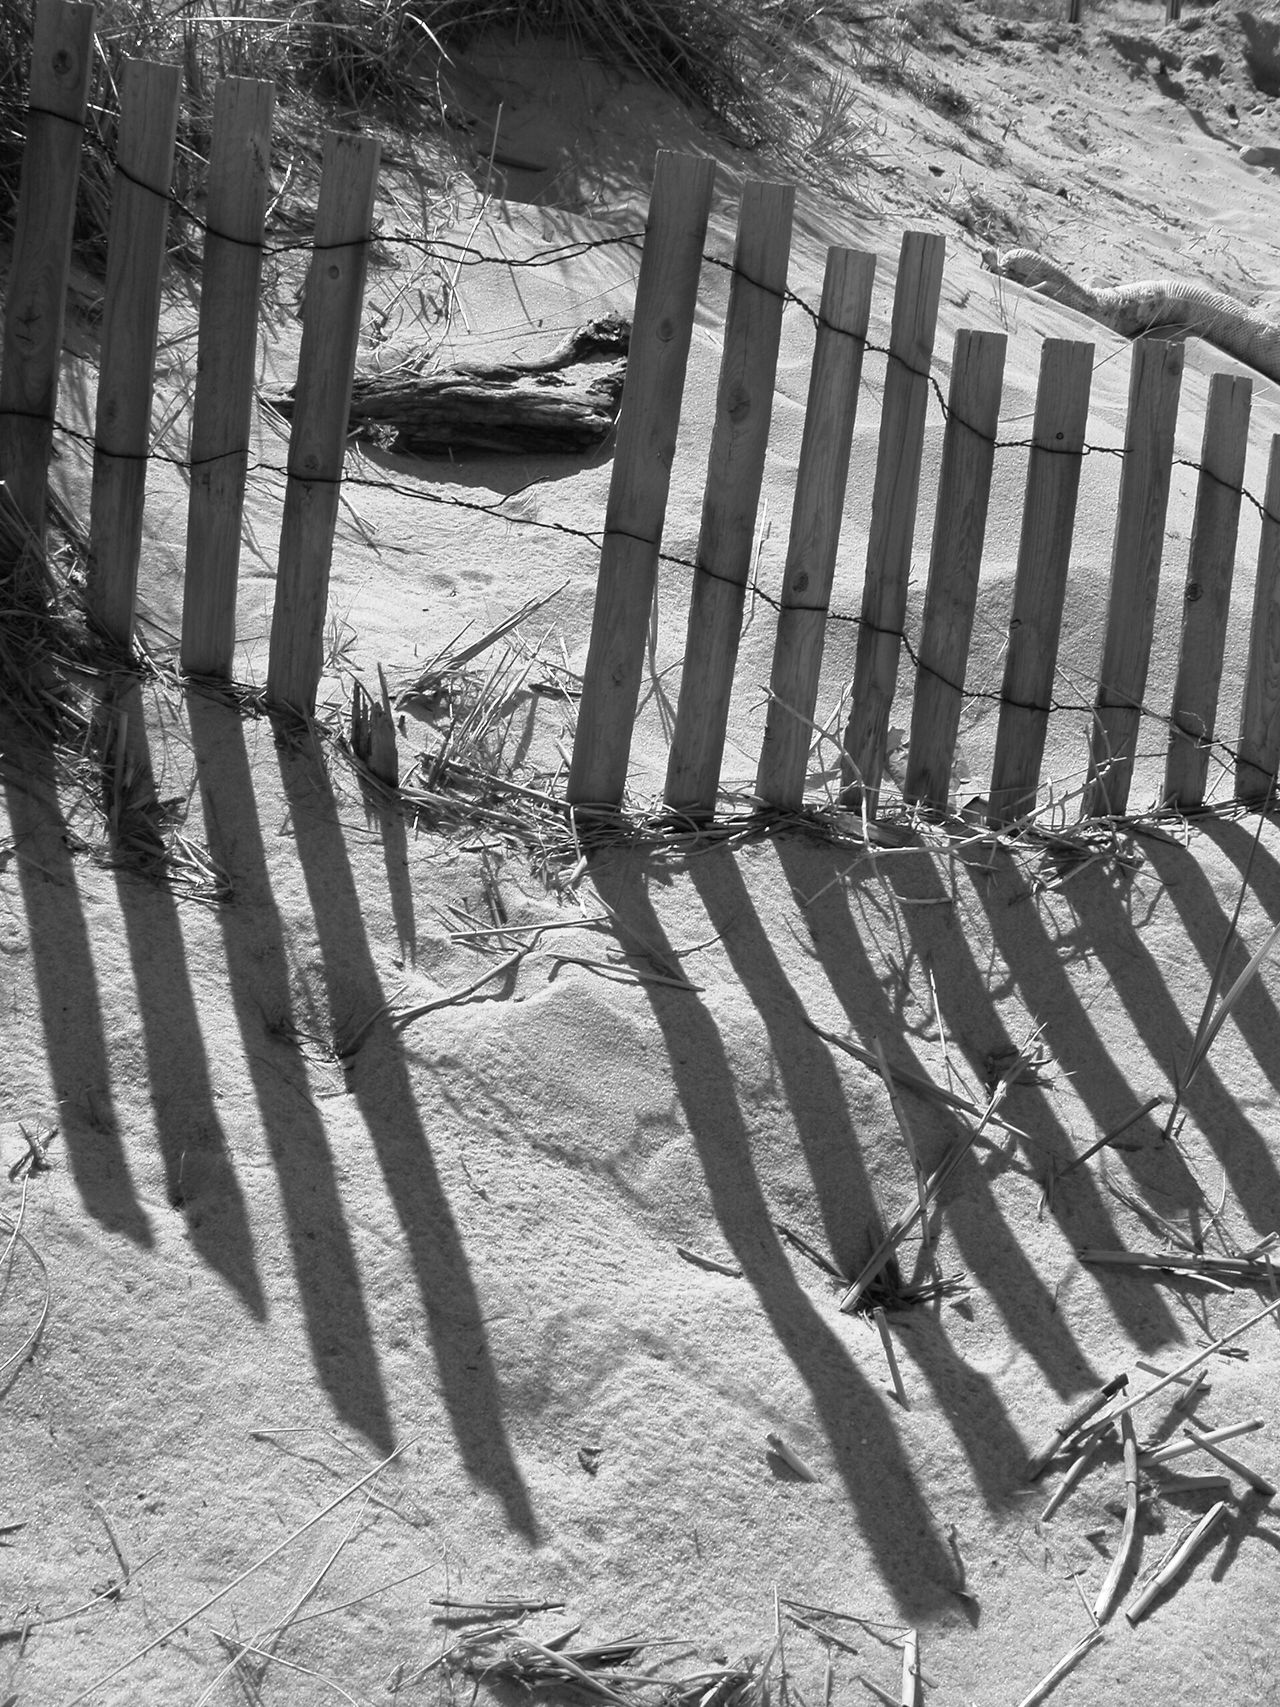 Sunlight No People Outdoors Day Picket Fence Beach Close-up Nature